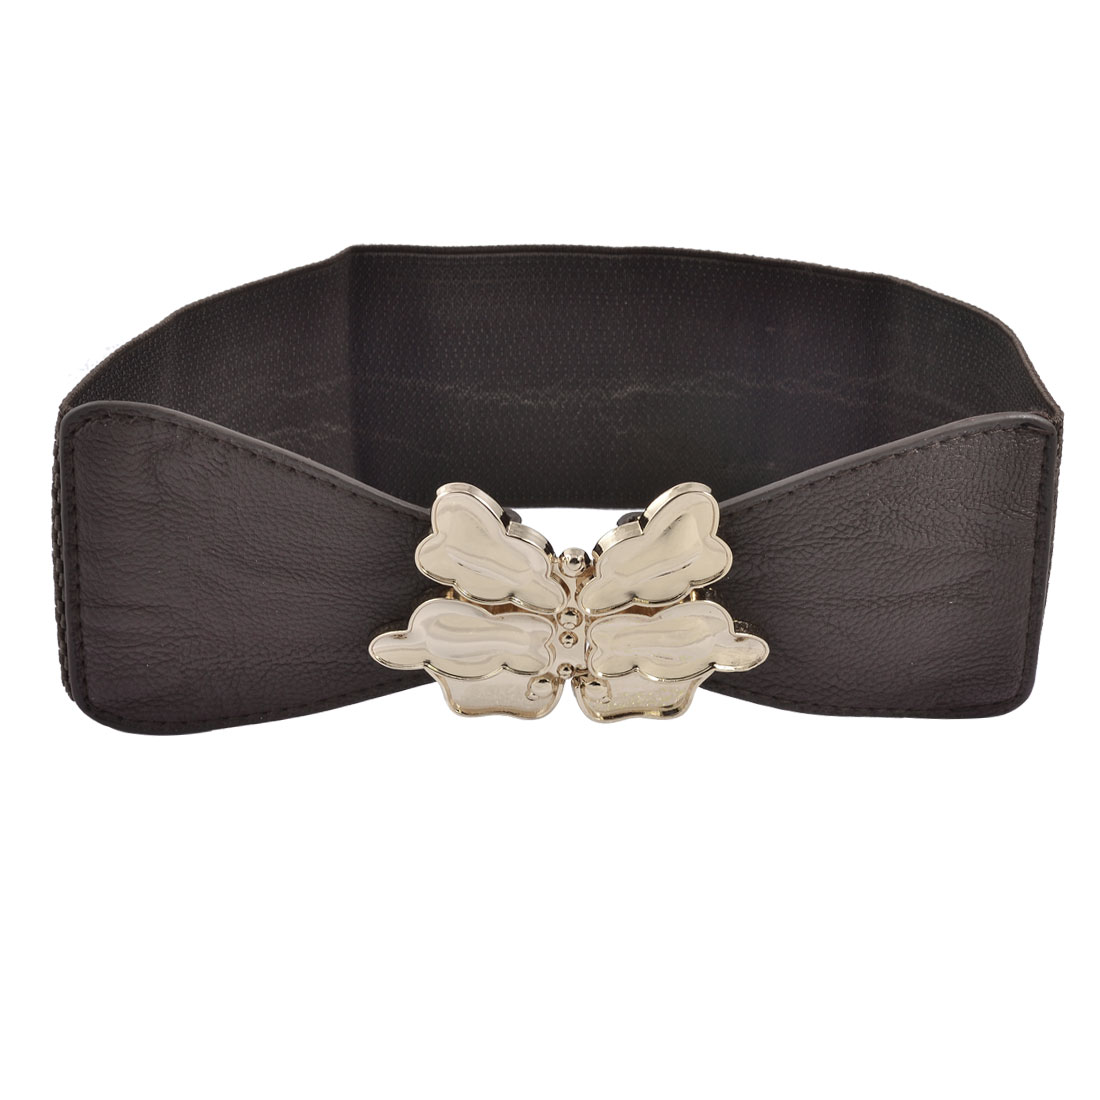 Metal Butterfly Buckle Dark Brown Stretchy High Waist Belt for Lady